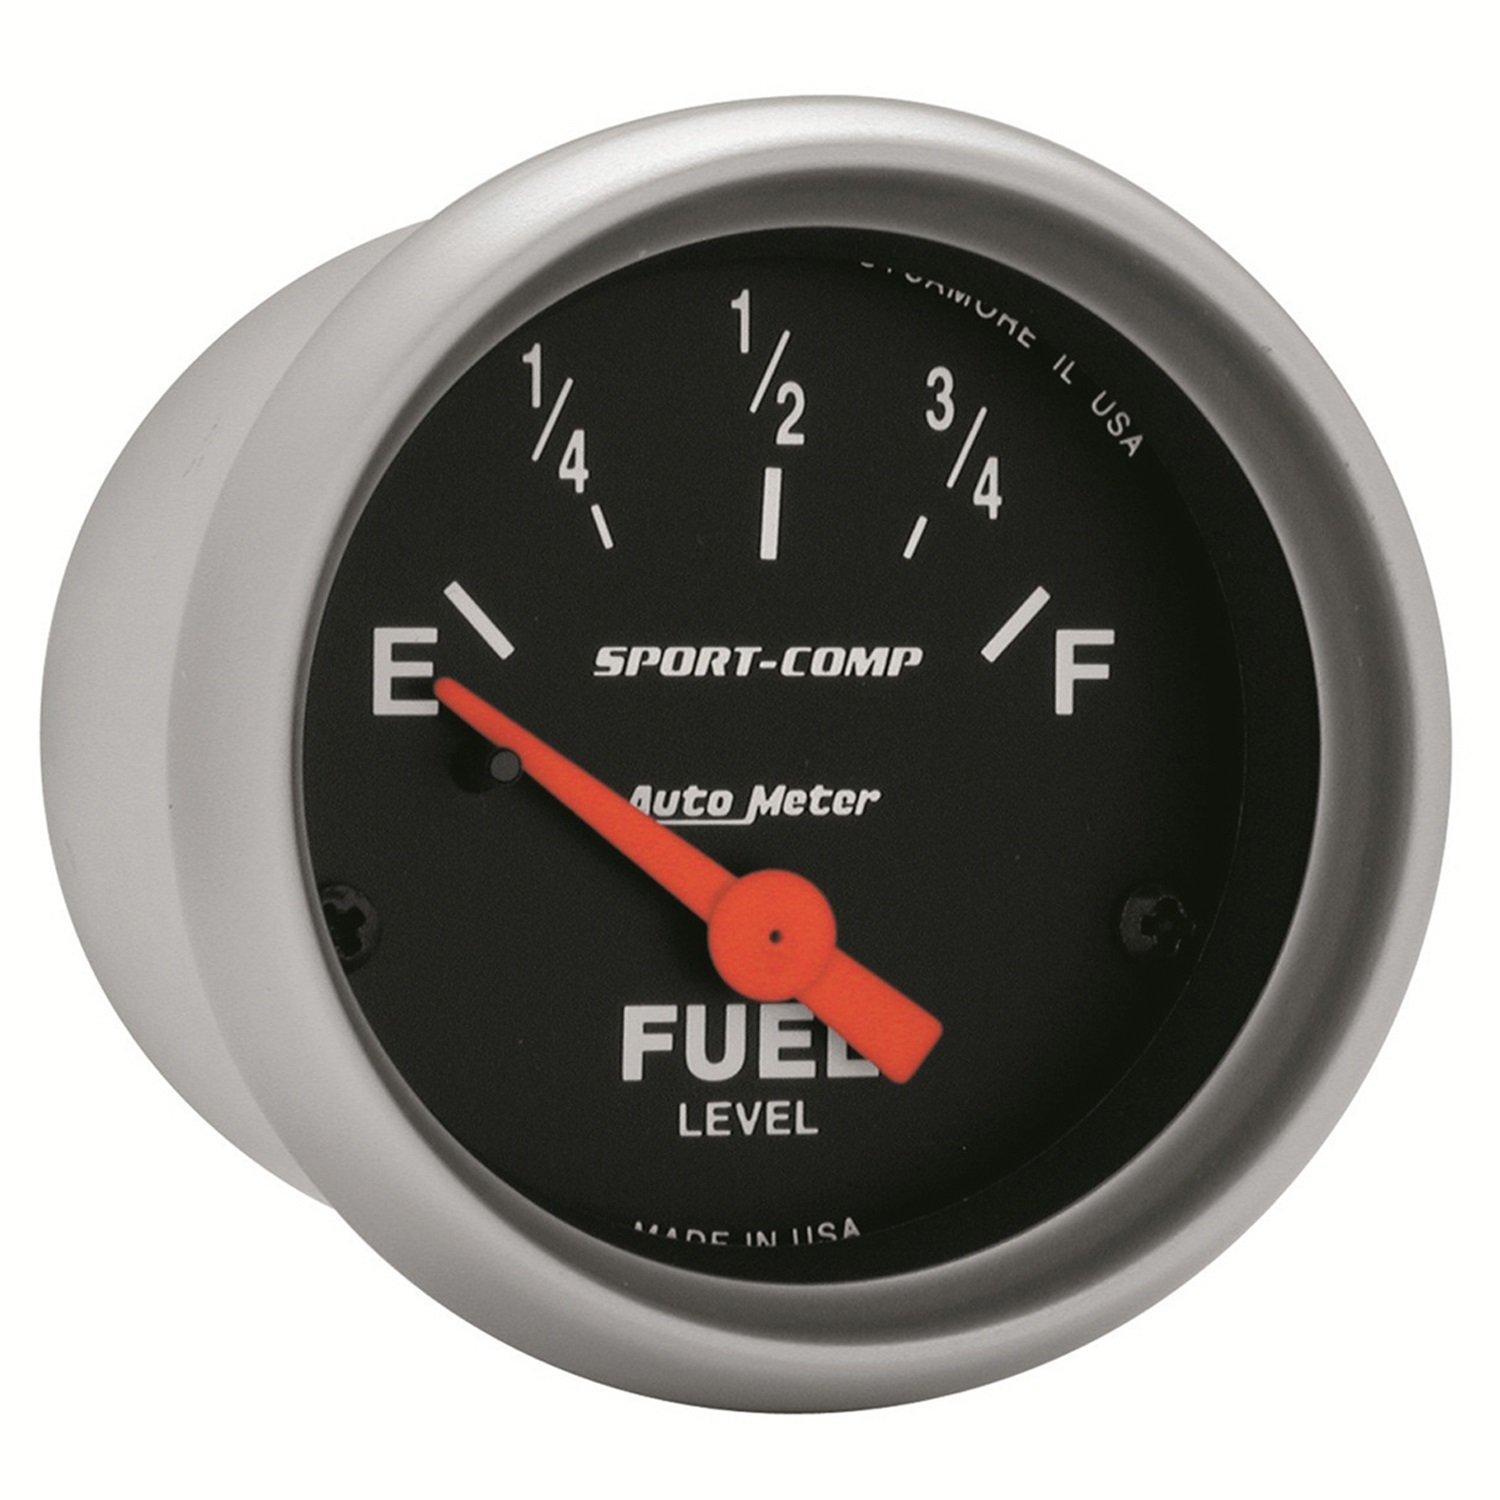 Auto Meter 3314 Sport-Comp Electric Fuel Level Gauge